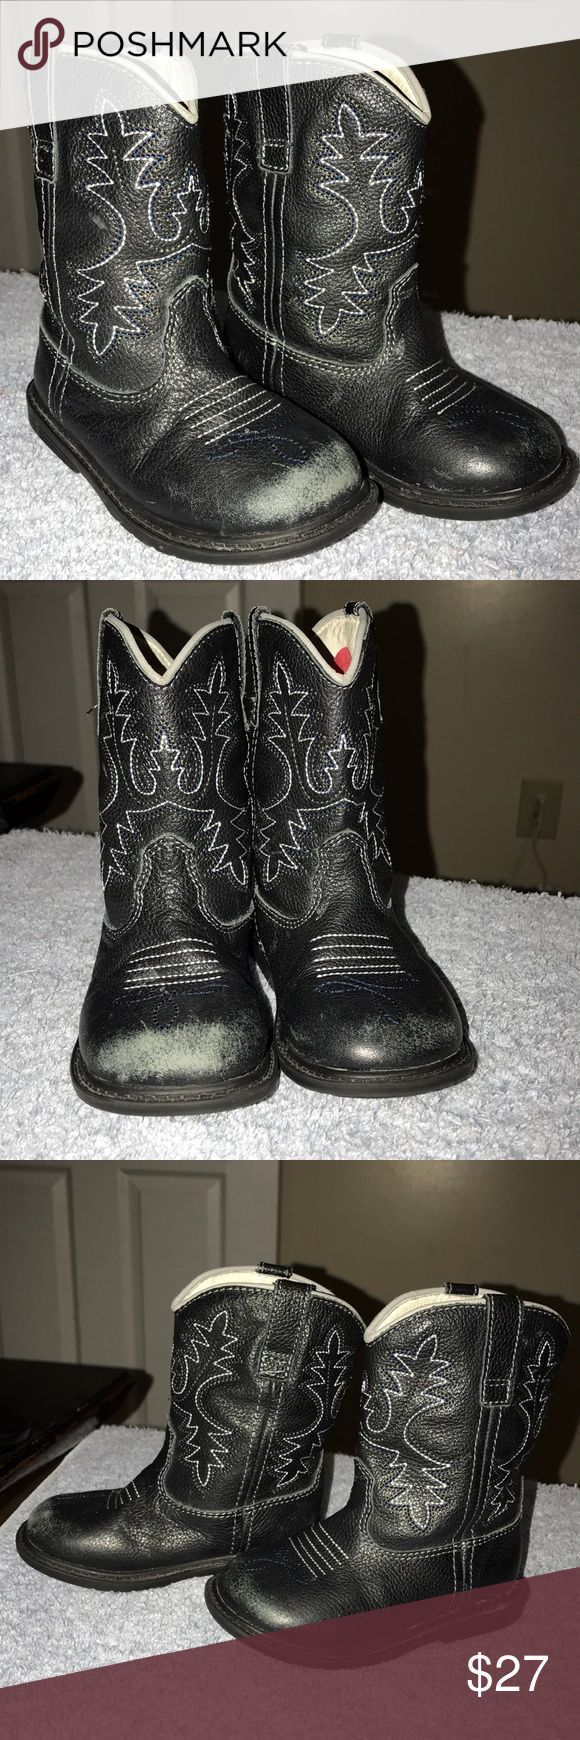 Pediped toddler size 7 Pediped leather toddler size 7 boots -used condition  -super cute for boy or girl as for me a girl wore them with her legging  -please see pictures had to glue one of the boot that happen as soon as I bought them  -originally paid 58 -thank you for looking pediped Shoes Boots